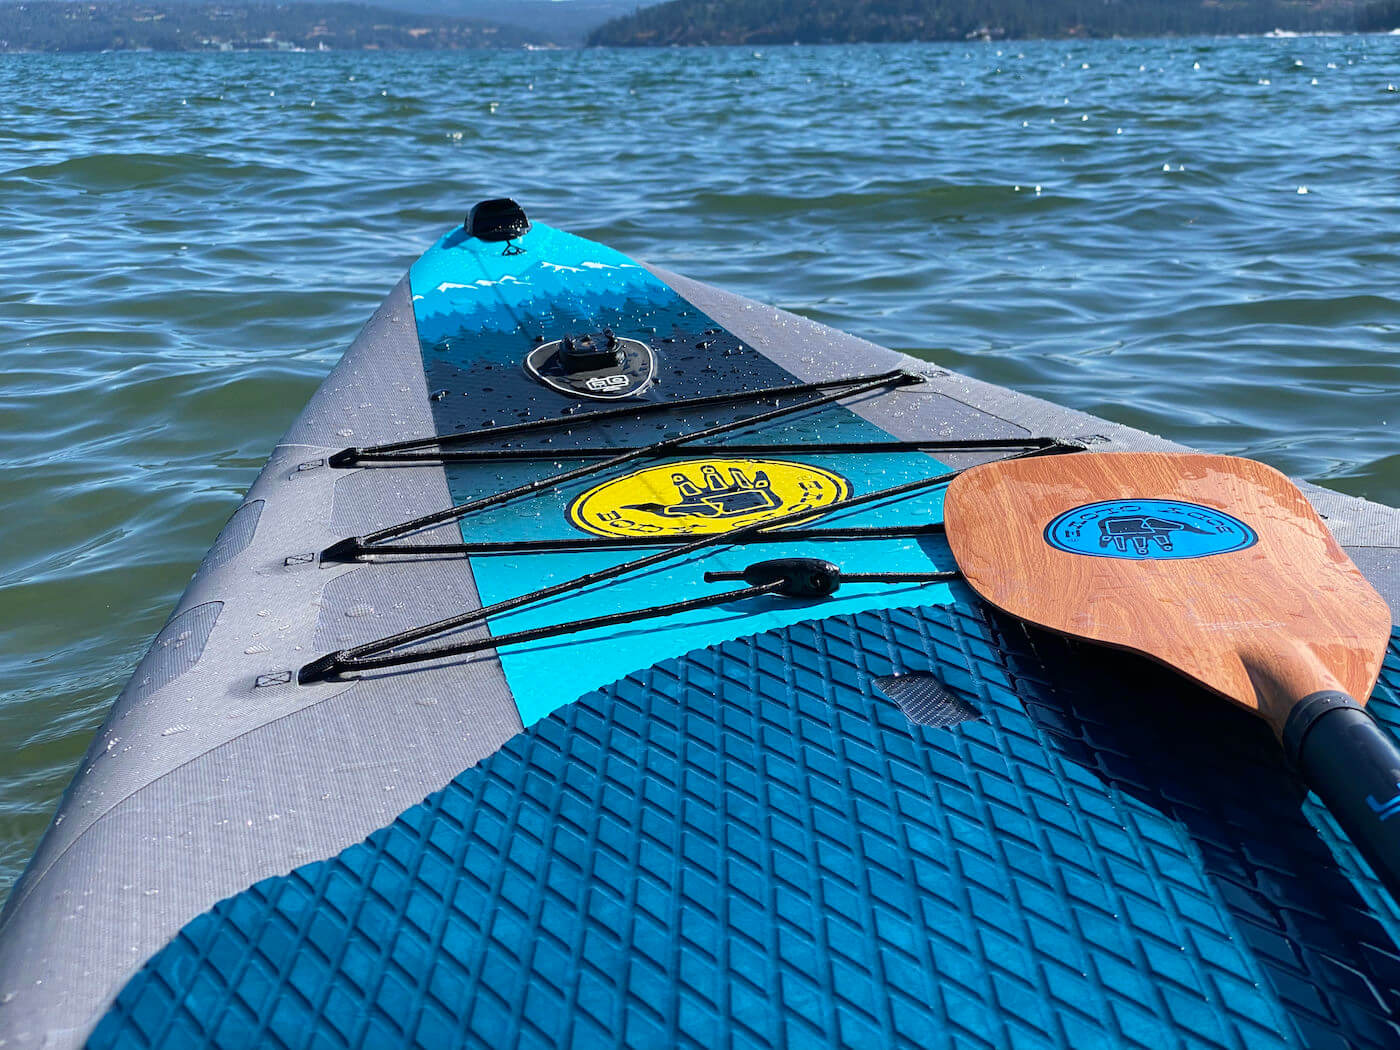 This review photo shows the Body Glove Performer 11 stand-up paddle board on a lake during the testing process.